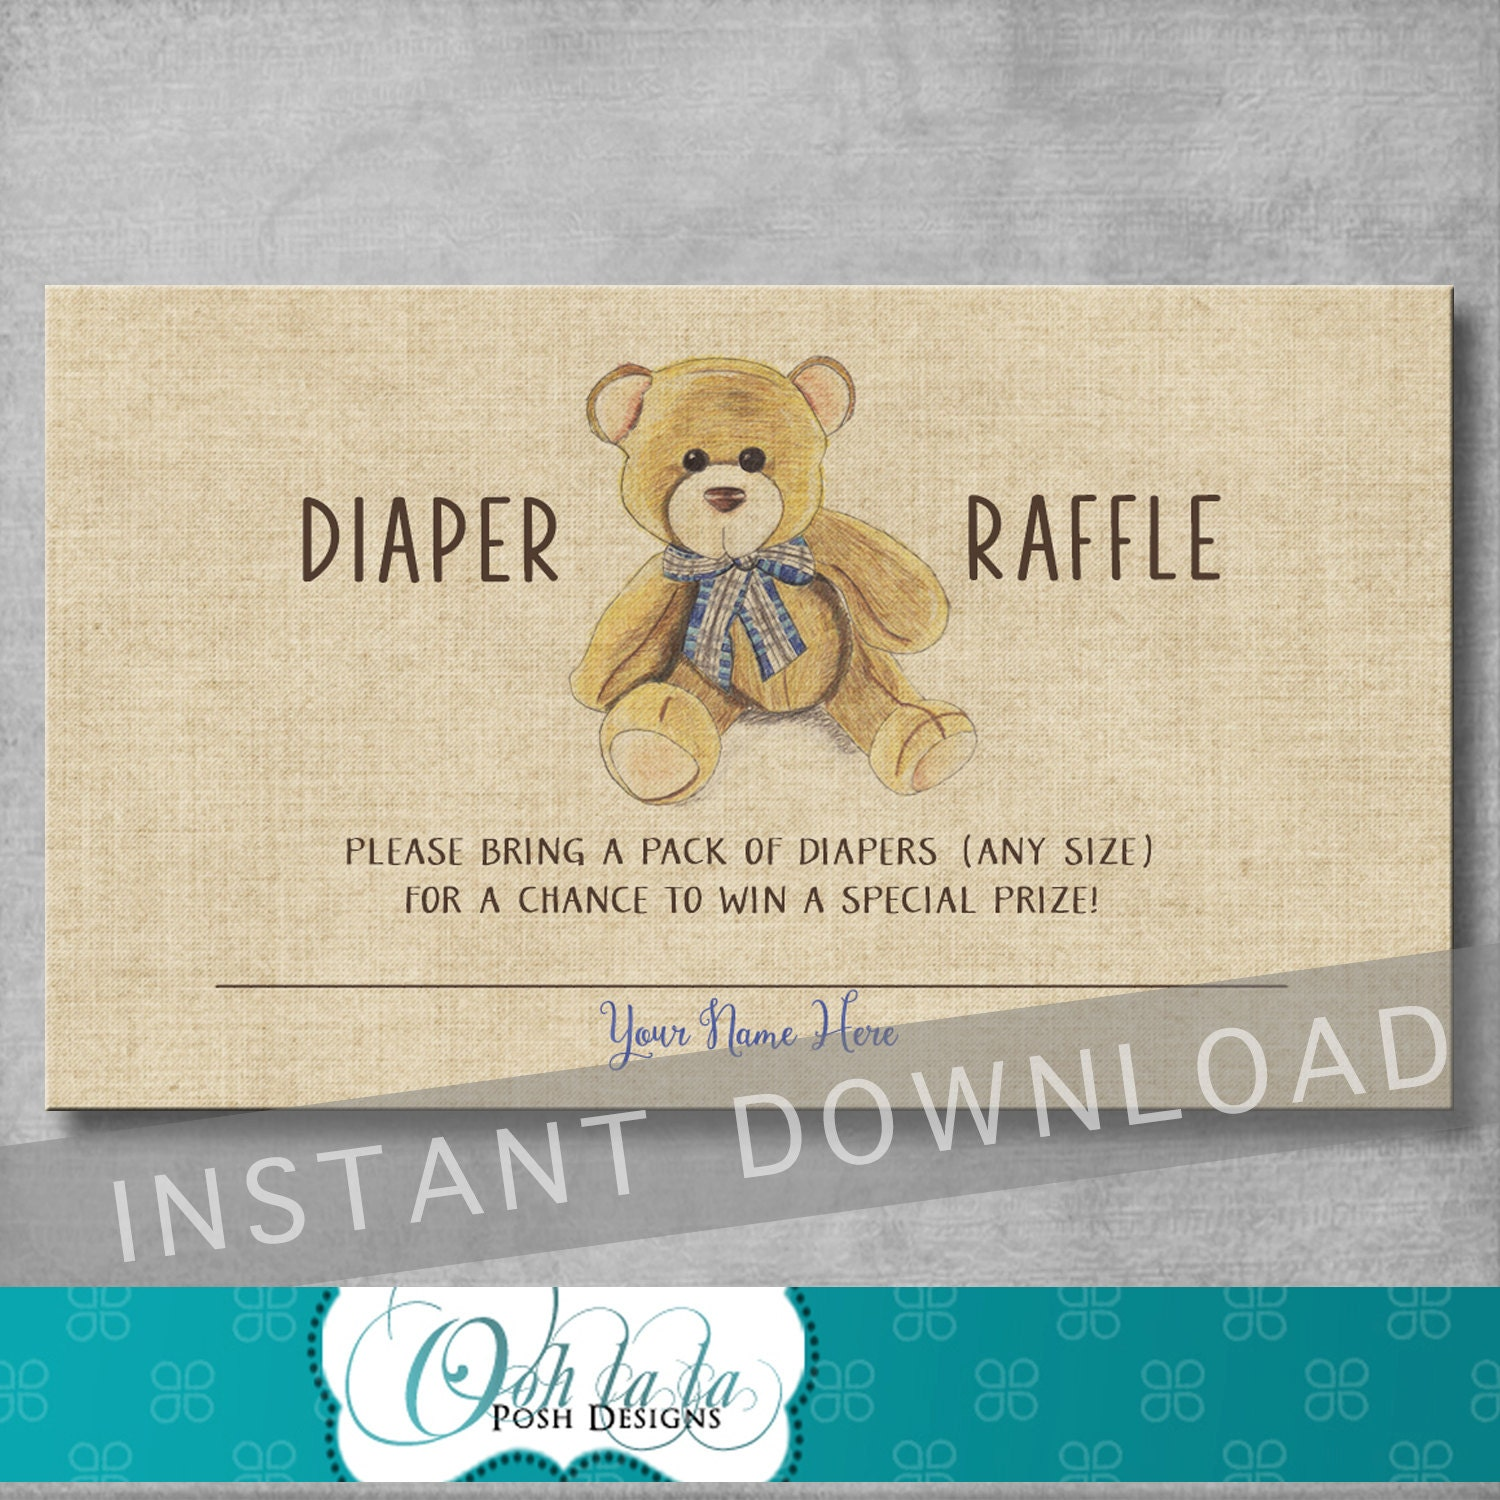 Create My Own Invitation was luxury invitation layout